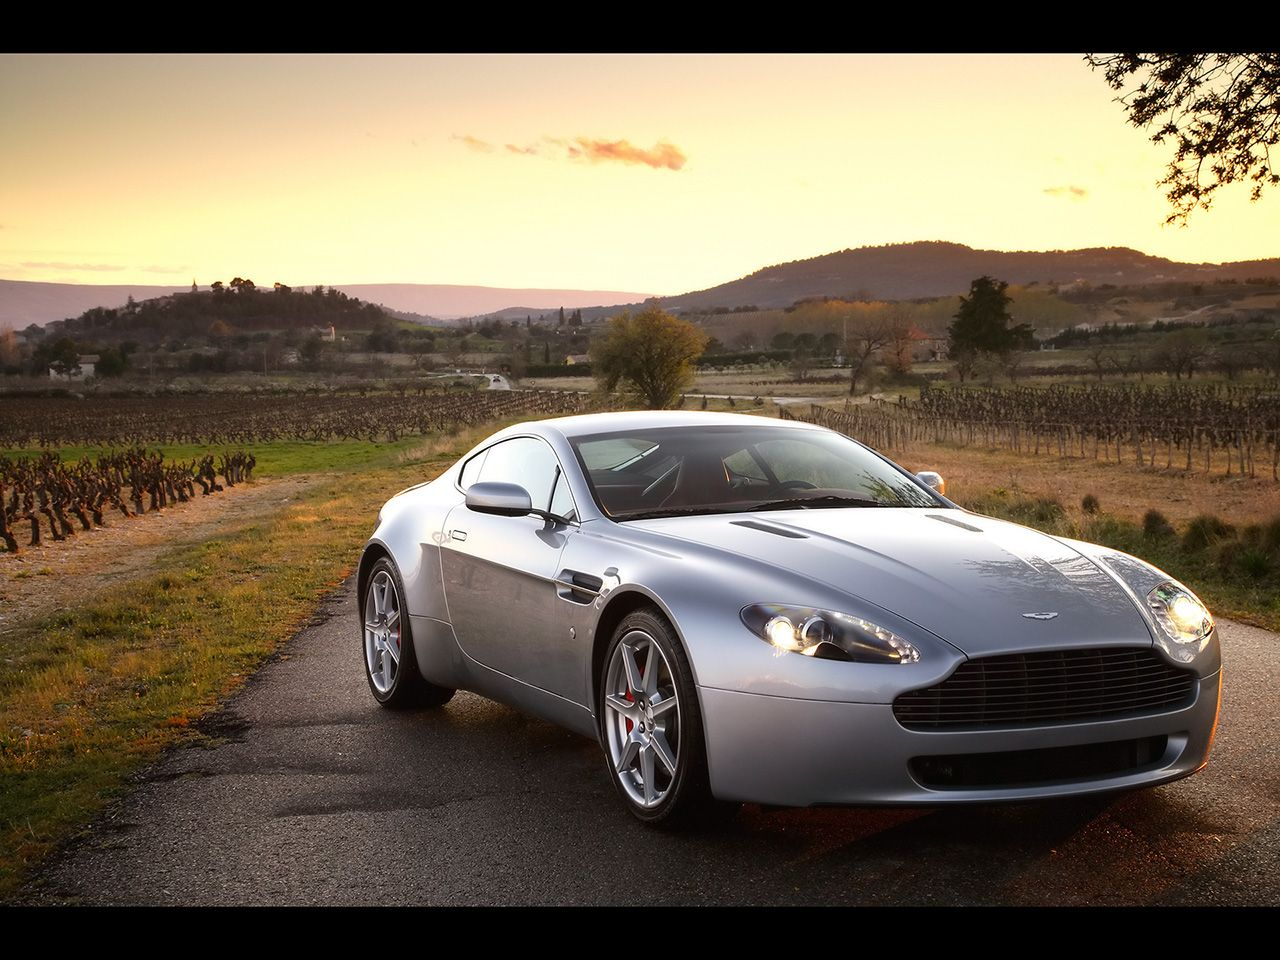 Aston Marin VantageClass Motor Car Digest Images - Aston martin marin